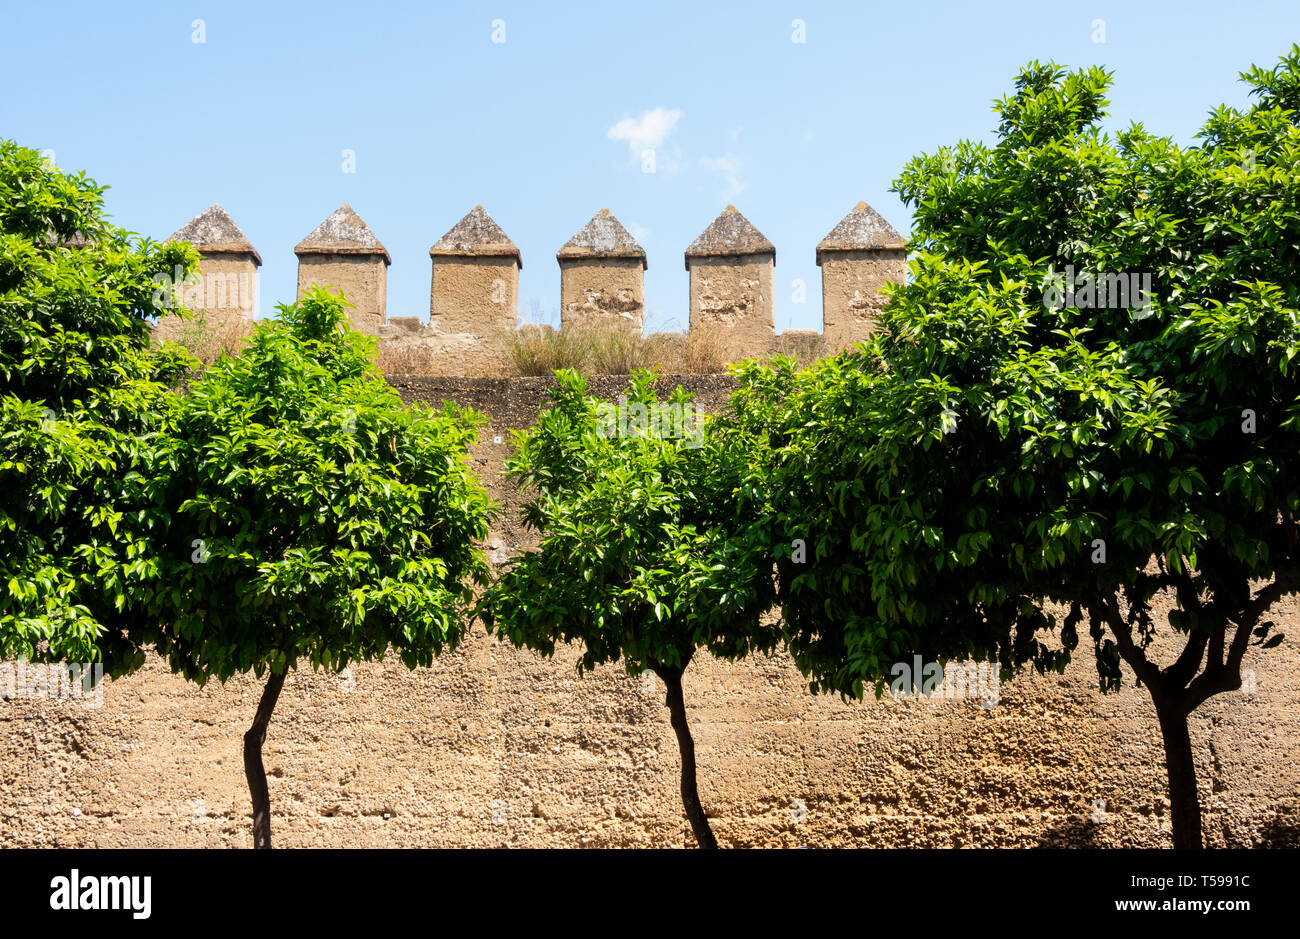 Orange trees in front of the Macarena Wall in Seville - Stock Image